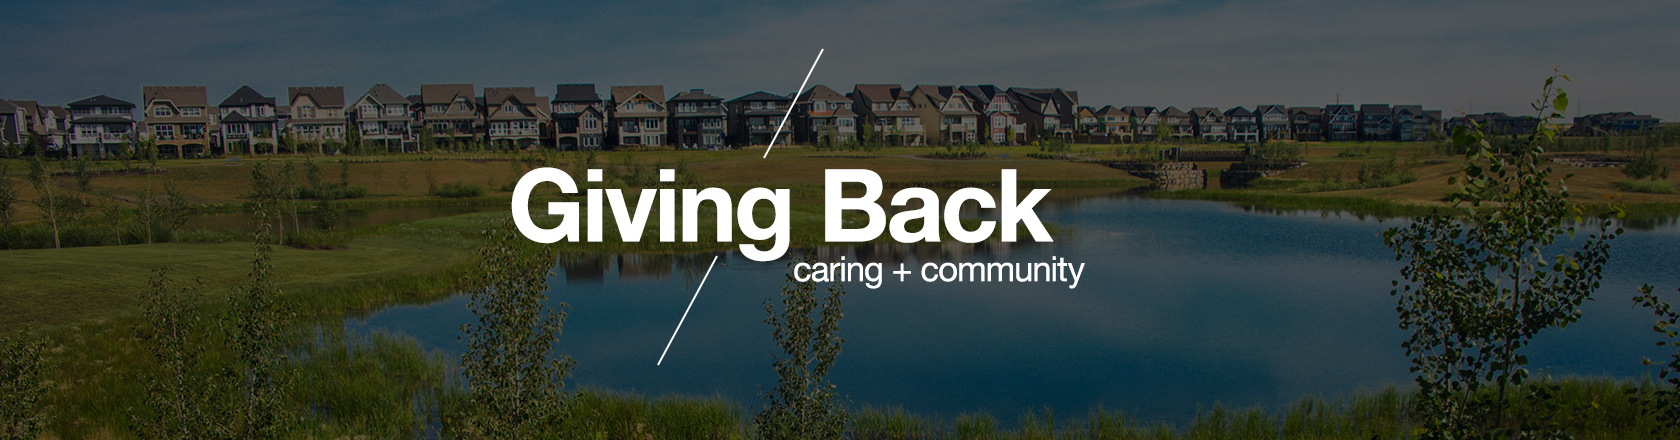 Giving Back - Caring + Community banner